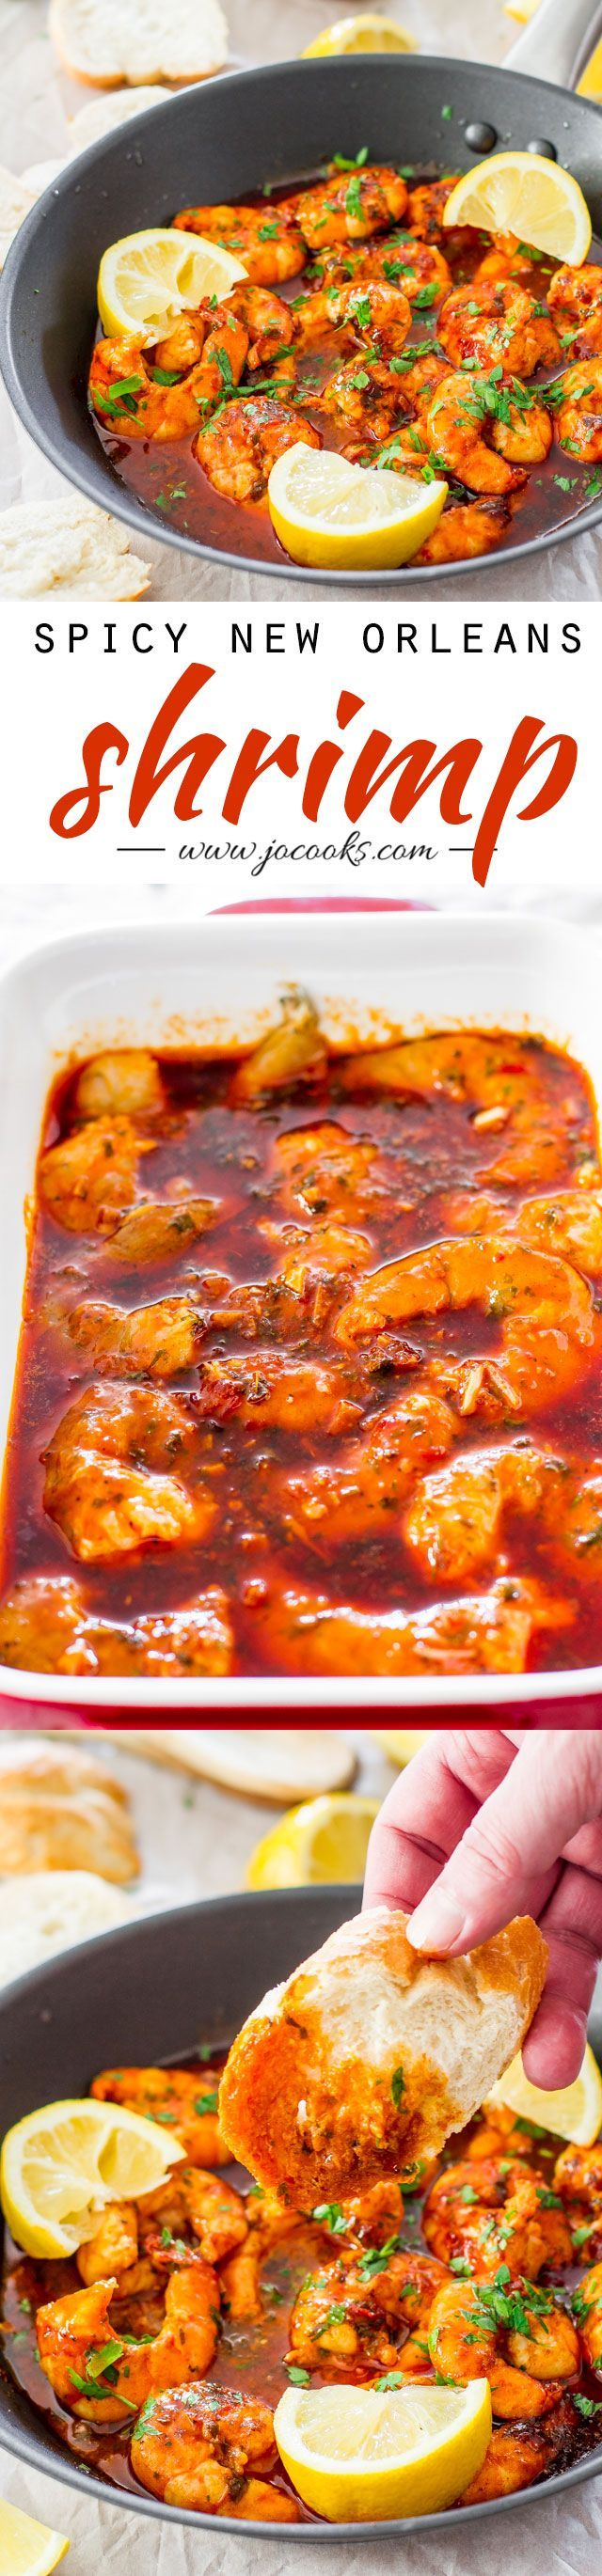 Spicy New Orleans Shrimp. A wonderful appetizer.